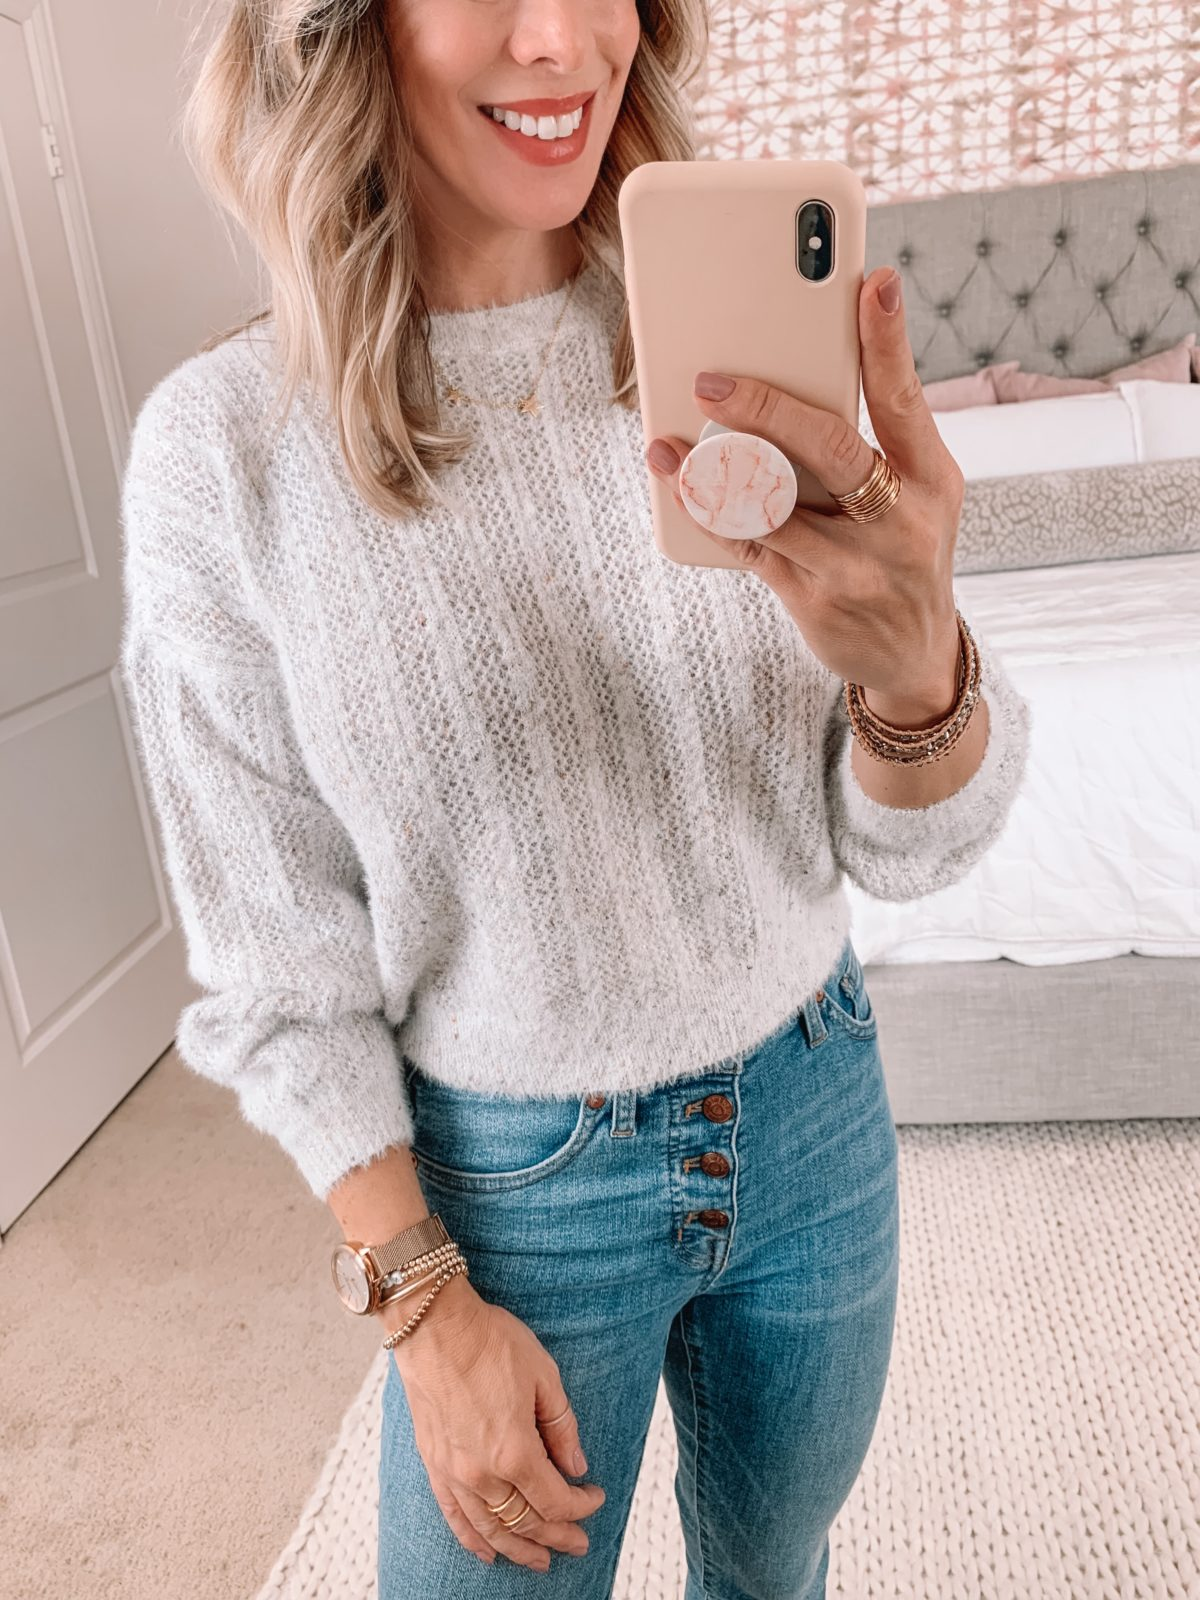 Style a Friend, Sweater, Jeans